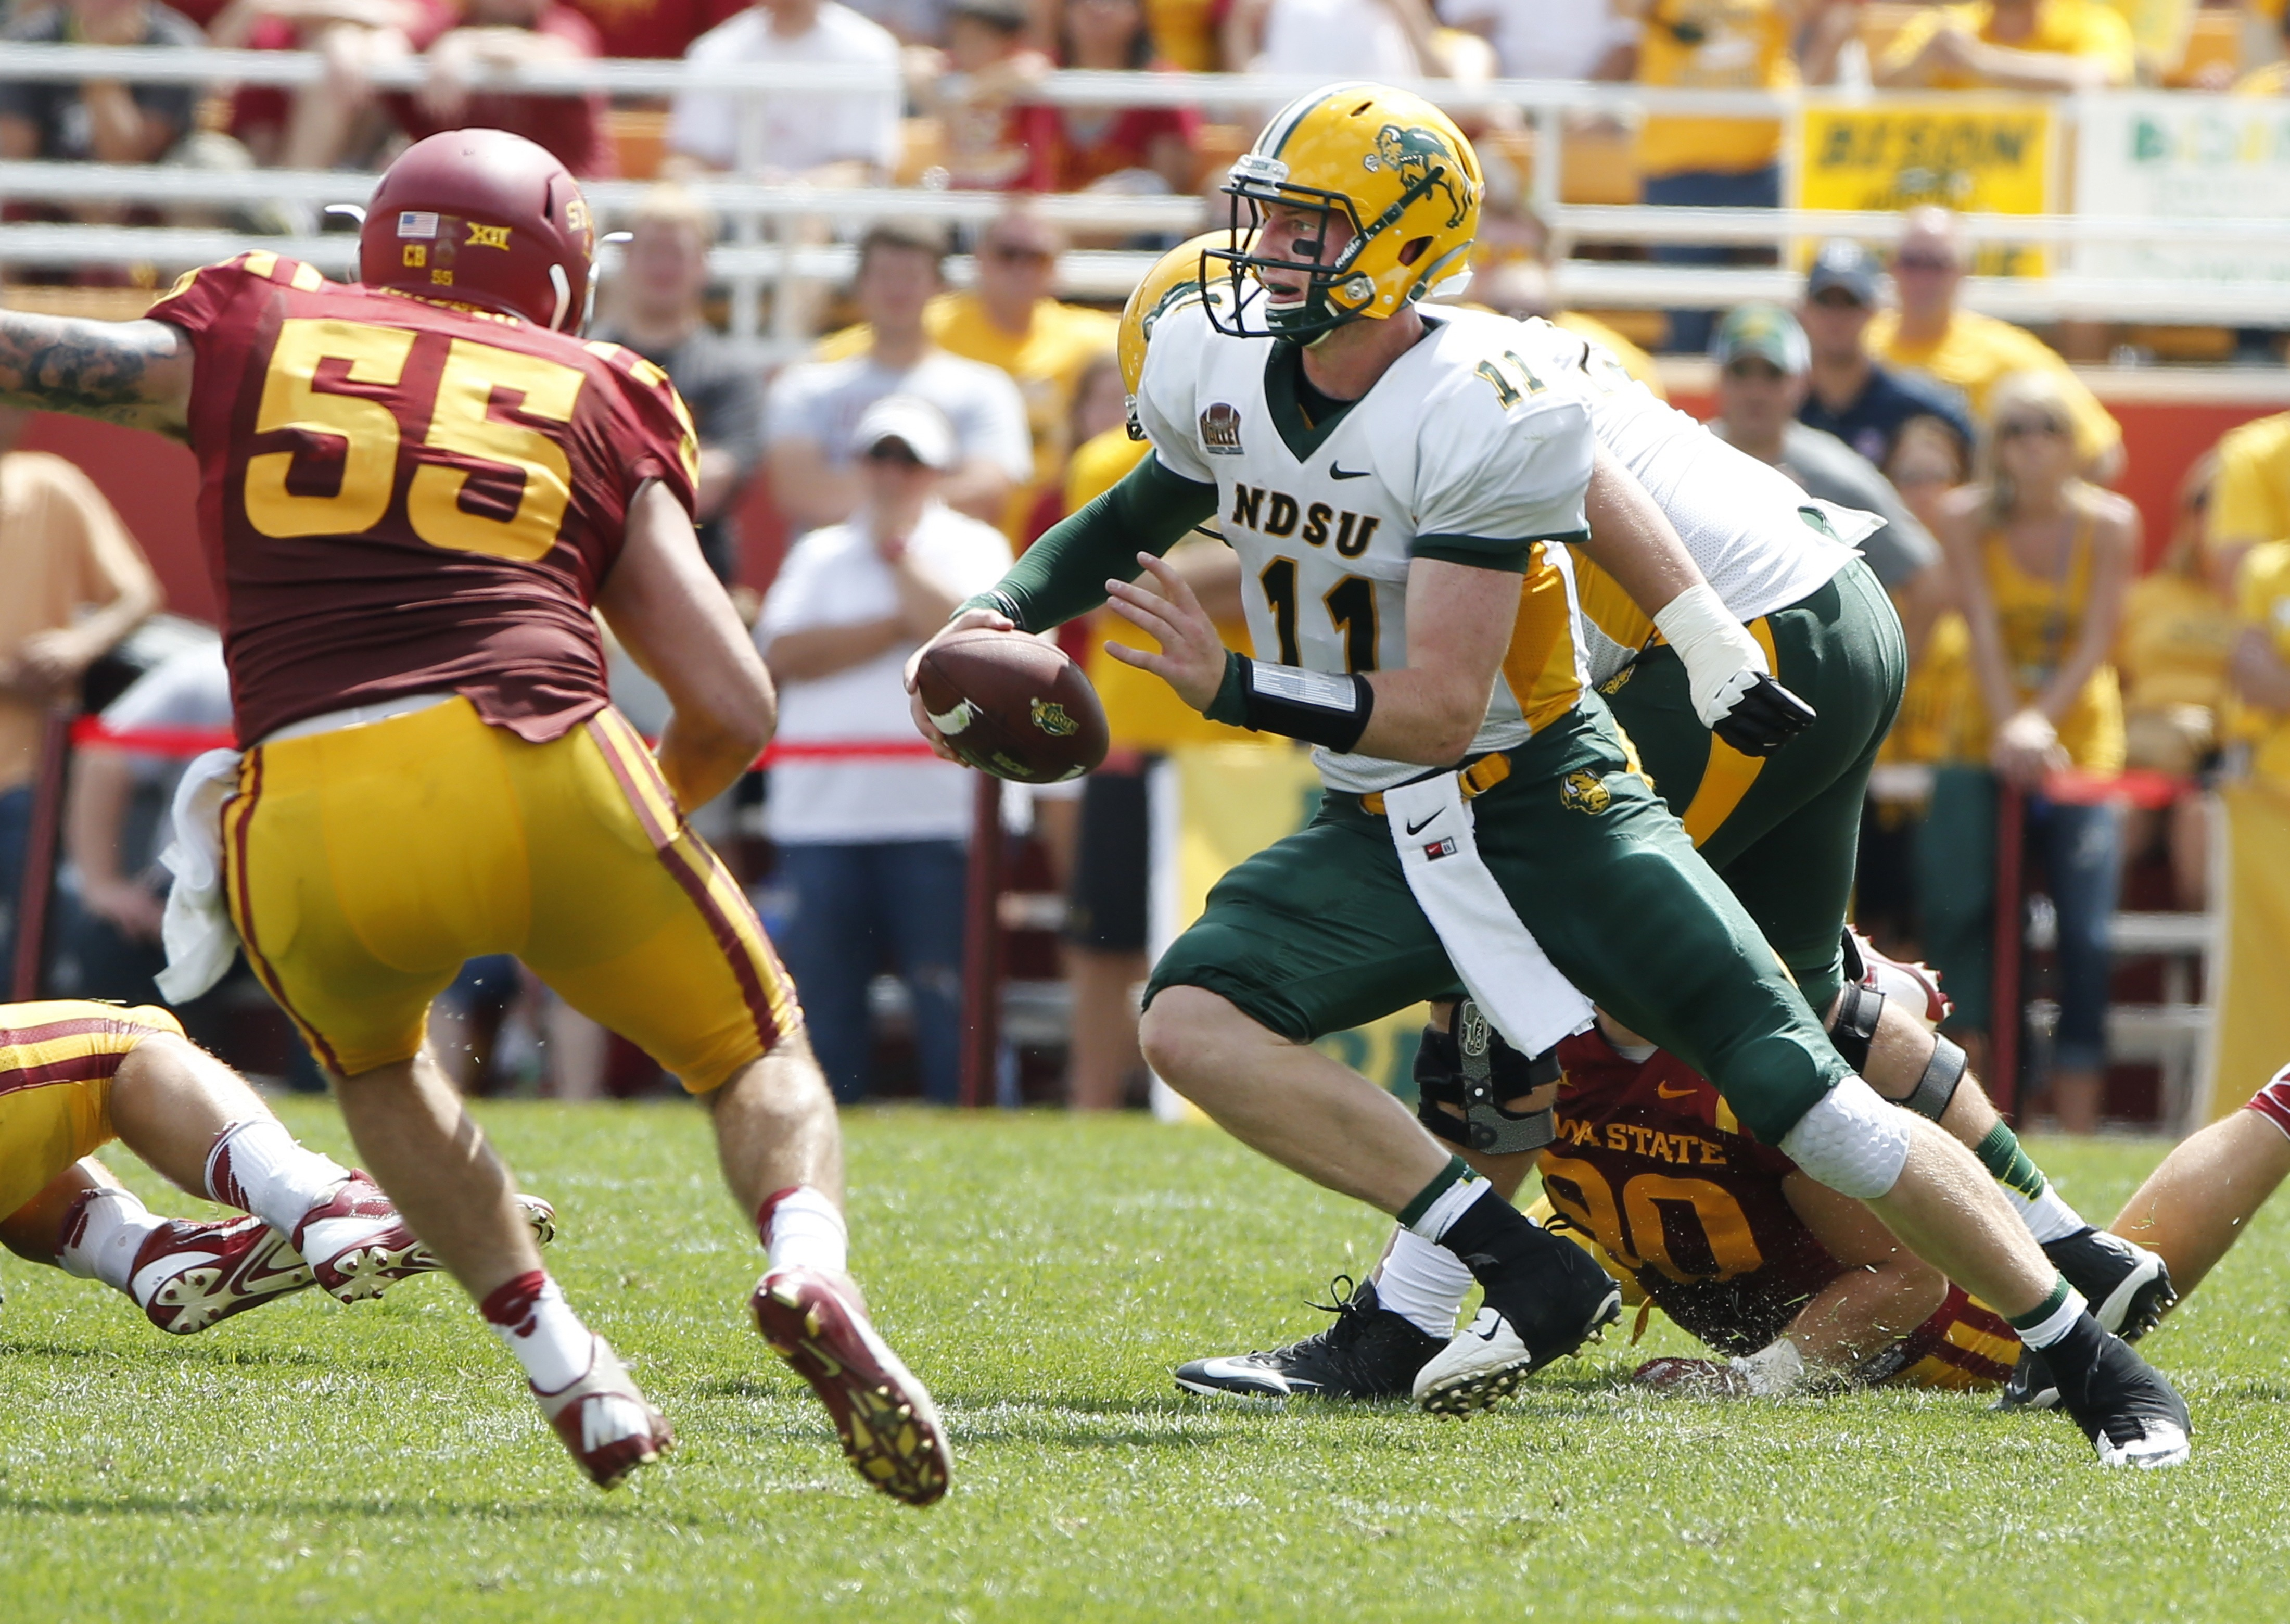 North Dakota State Coach Says Wentz Ran An Nfl Like Offense